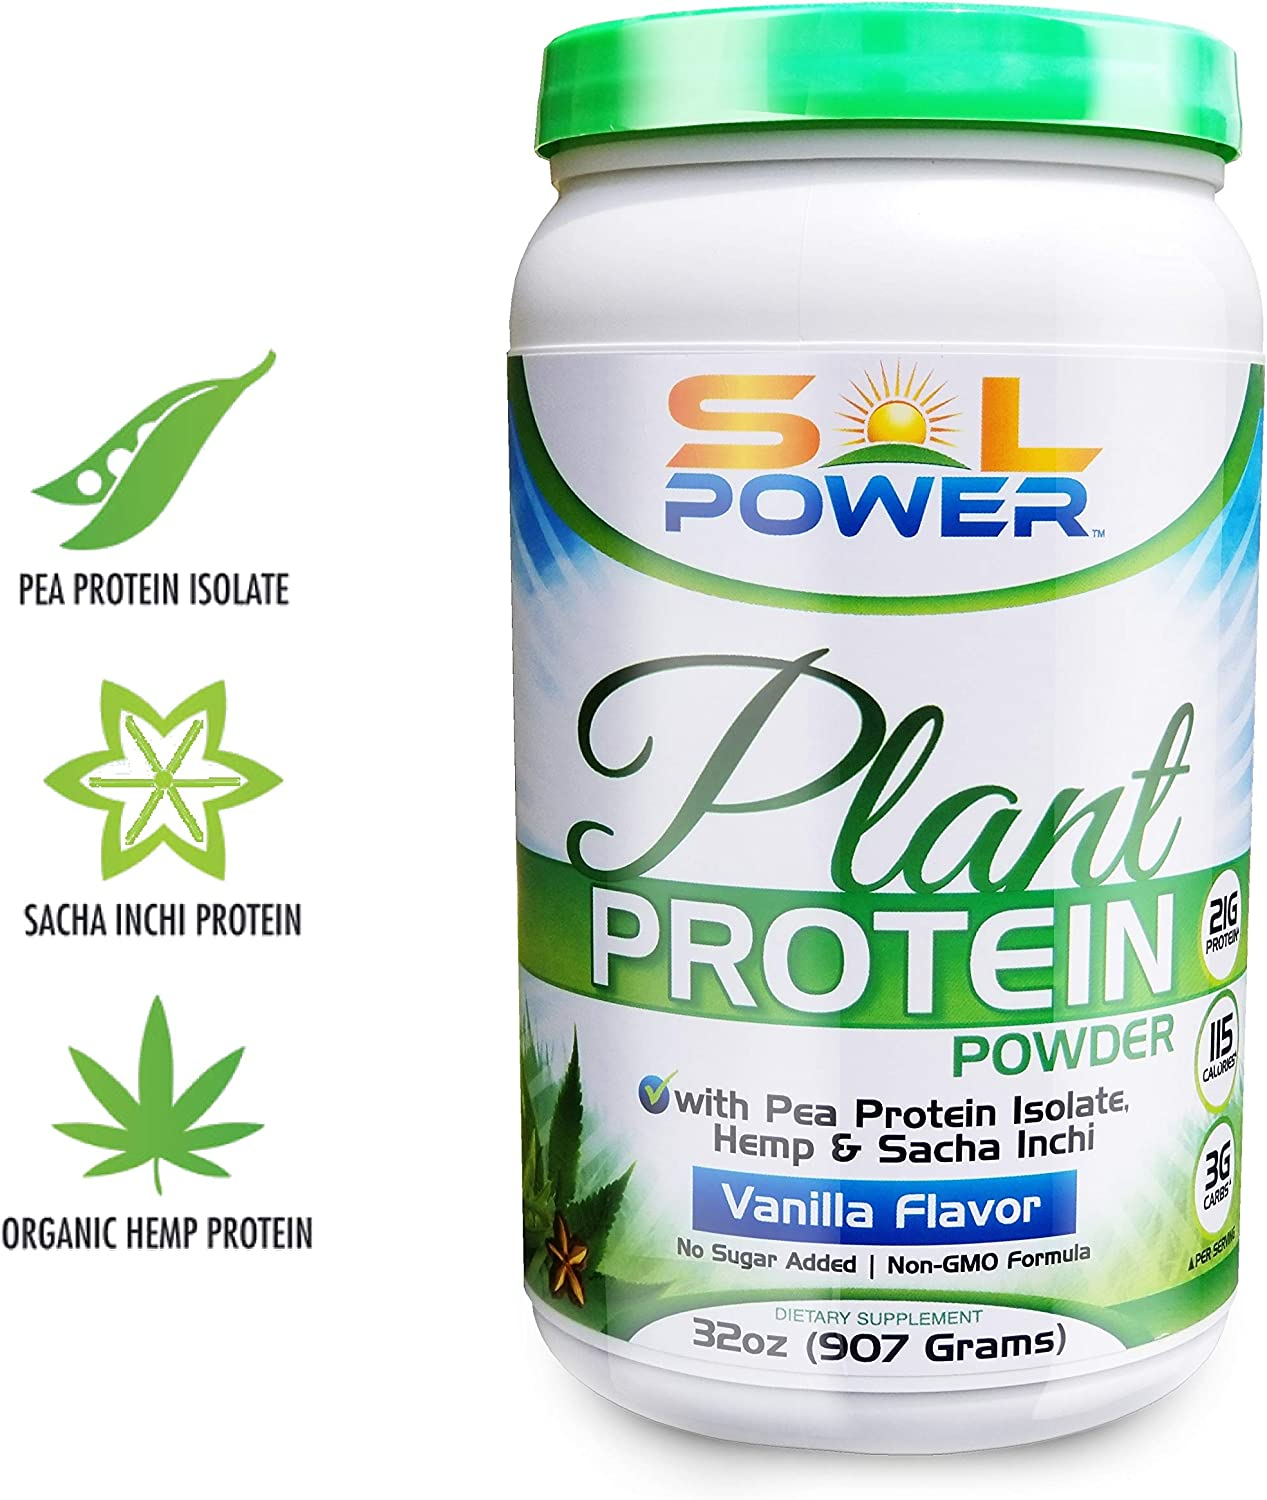 Organic Hemp Vegan Plant Protein Powder, SOL POWER, Vanilla with Spirulina, Sacha Inchi, and Pea Isolate for Healthy Digestion Staying Young Non-GMO